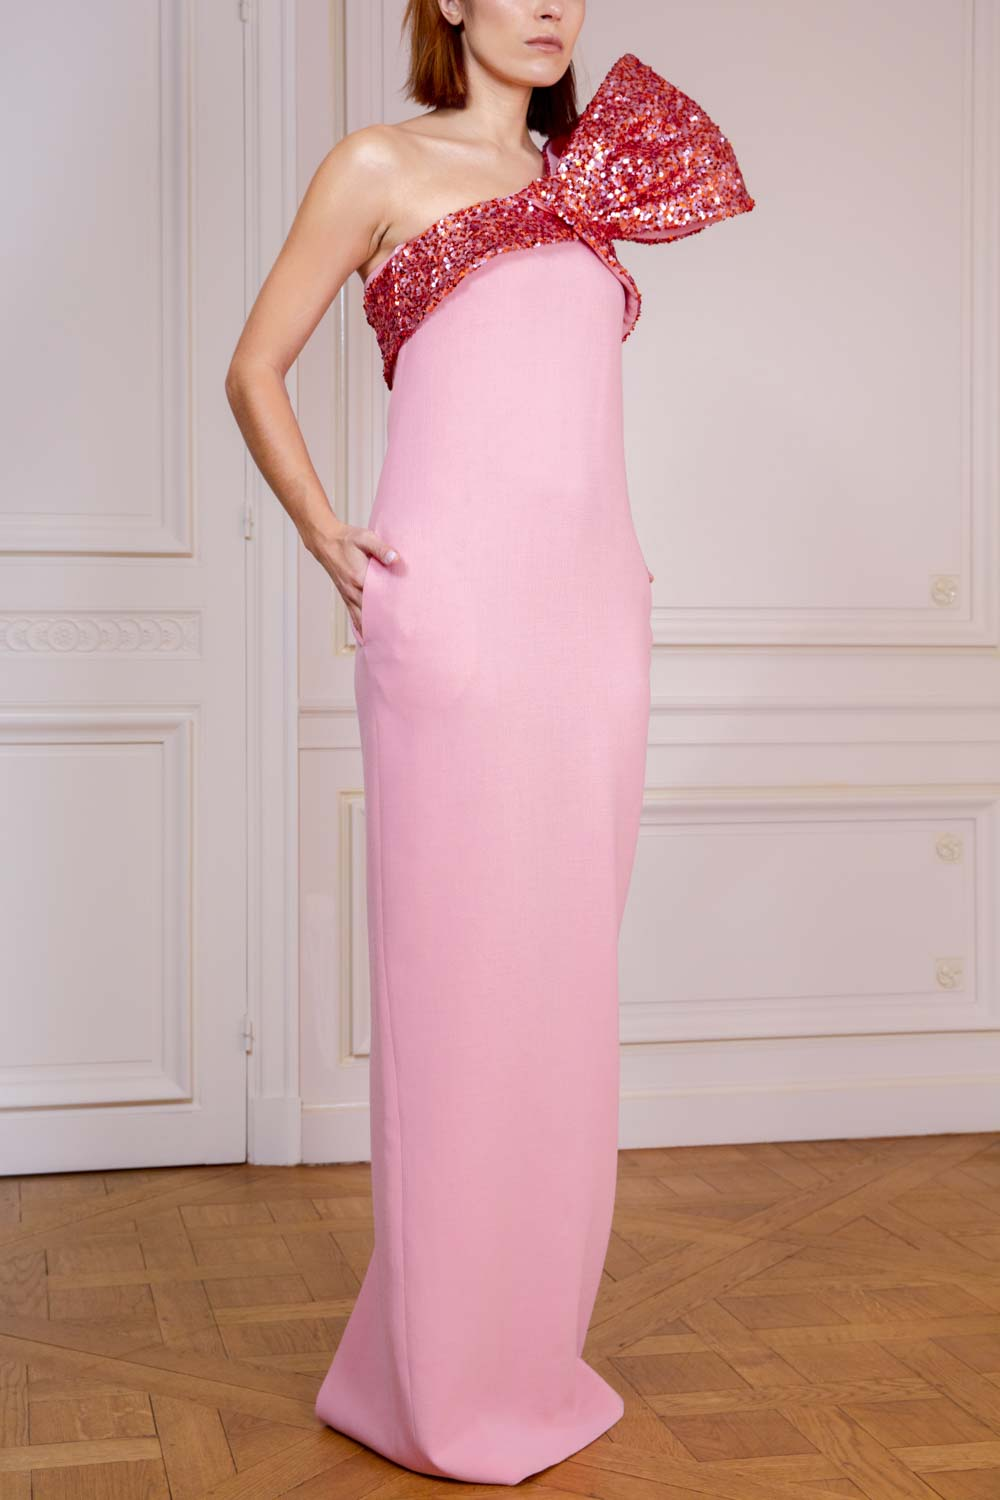 Candy pink column evening gown with sparkling sequin bow